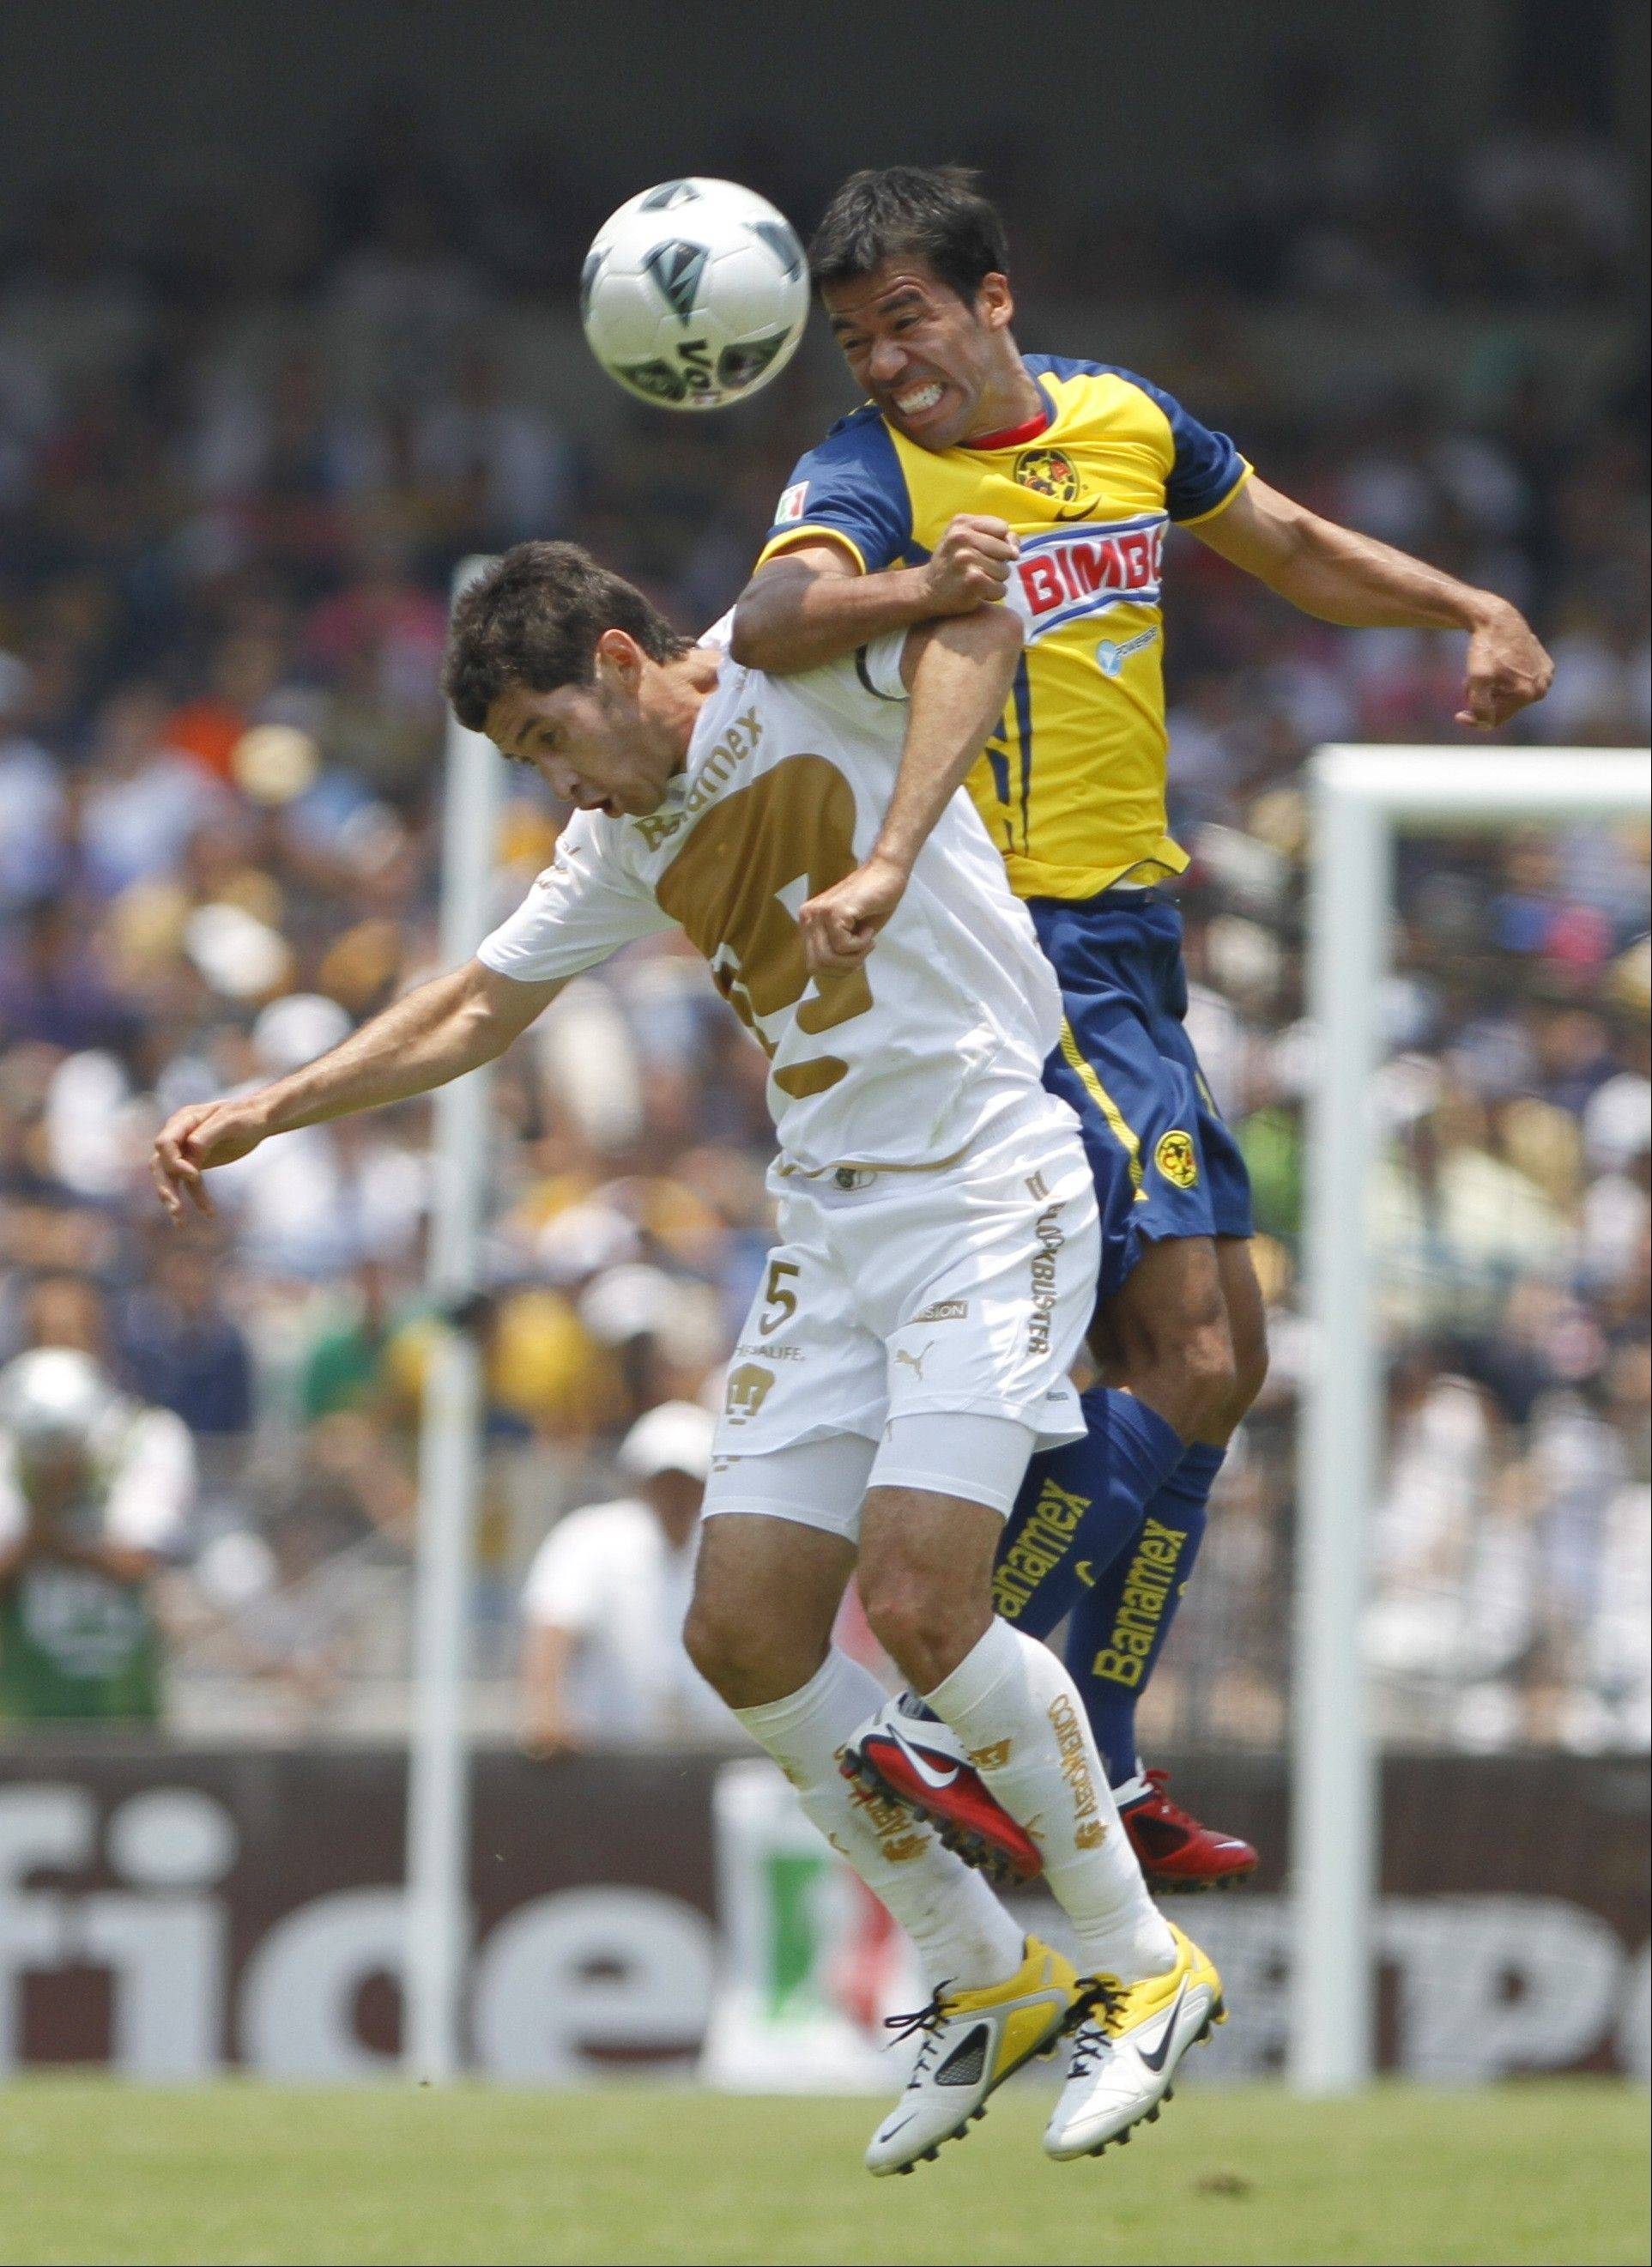 Club America's Pavel Pardo, top, and Pumas' Israel Castro battle during a Mexican soccer league game in Mexico City, last May. The 25-year-old Pardo has signed to play for the Chicago Fire.